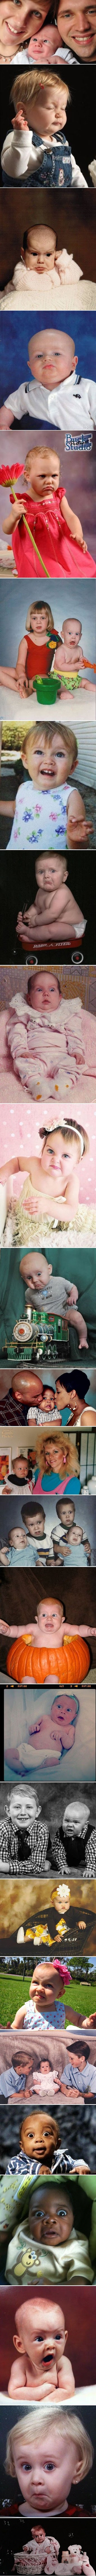 Funny Crazy Baby Photo Strip Pictures